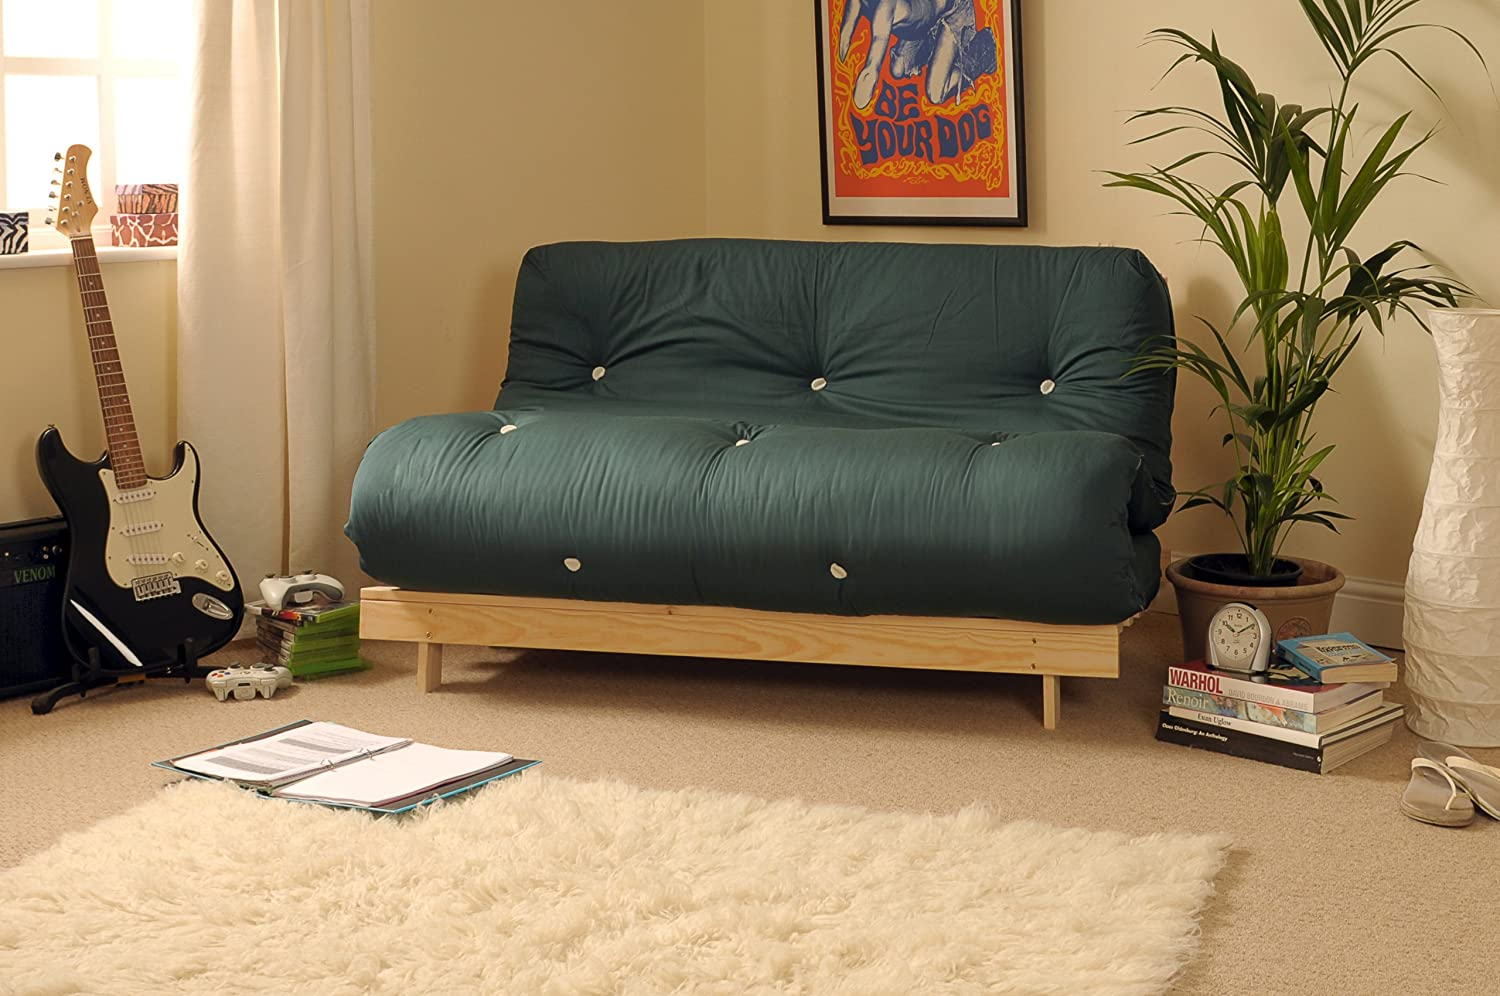 Comfy Living 4ft Small Double 120cm Wooden Futon Set GLADE GREEN Mattress